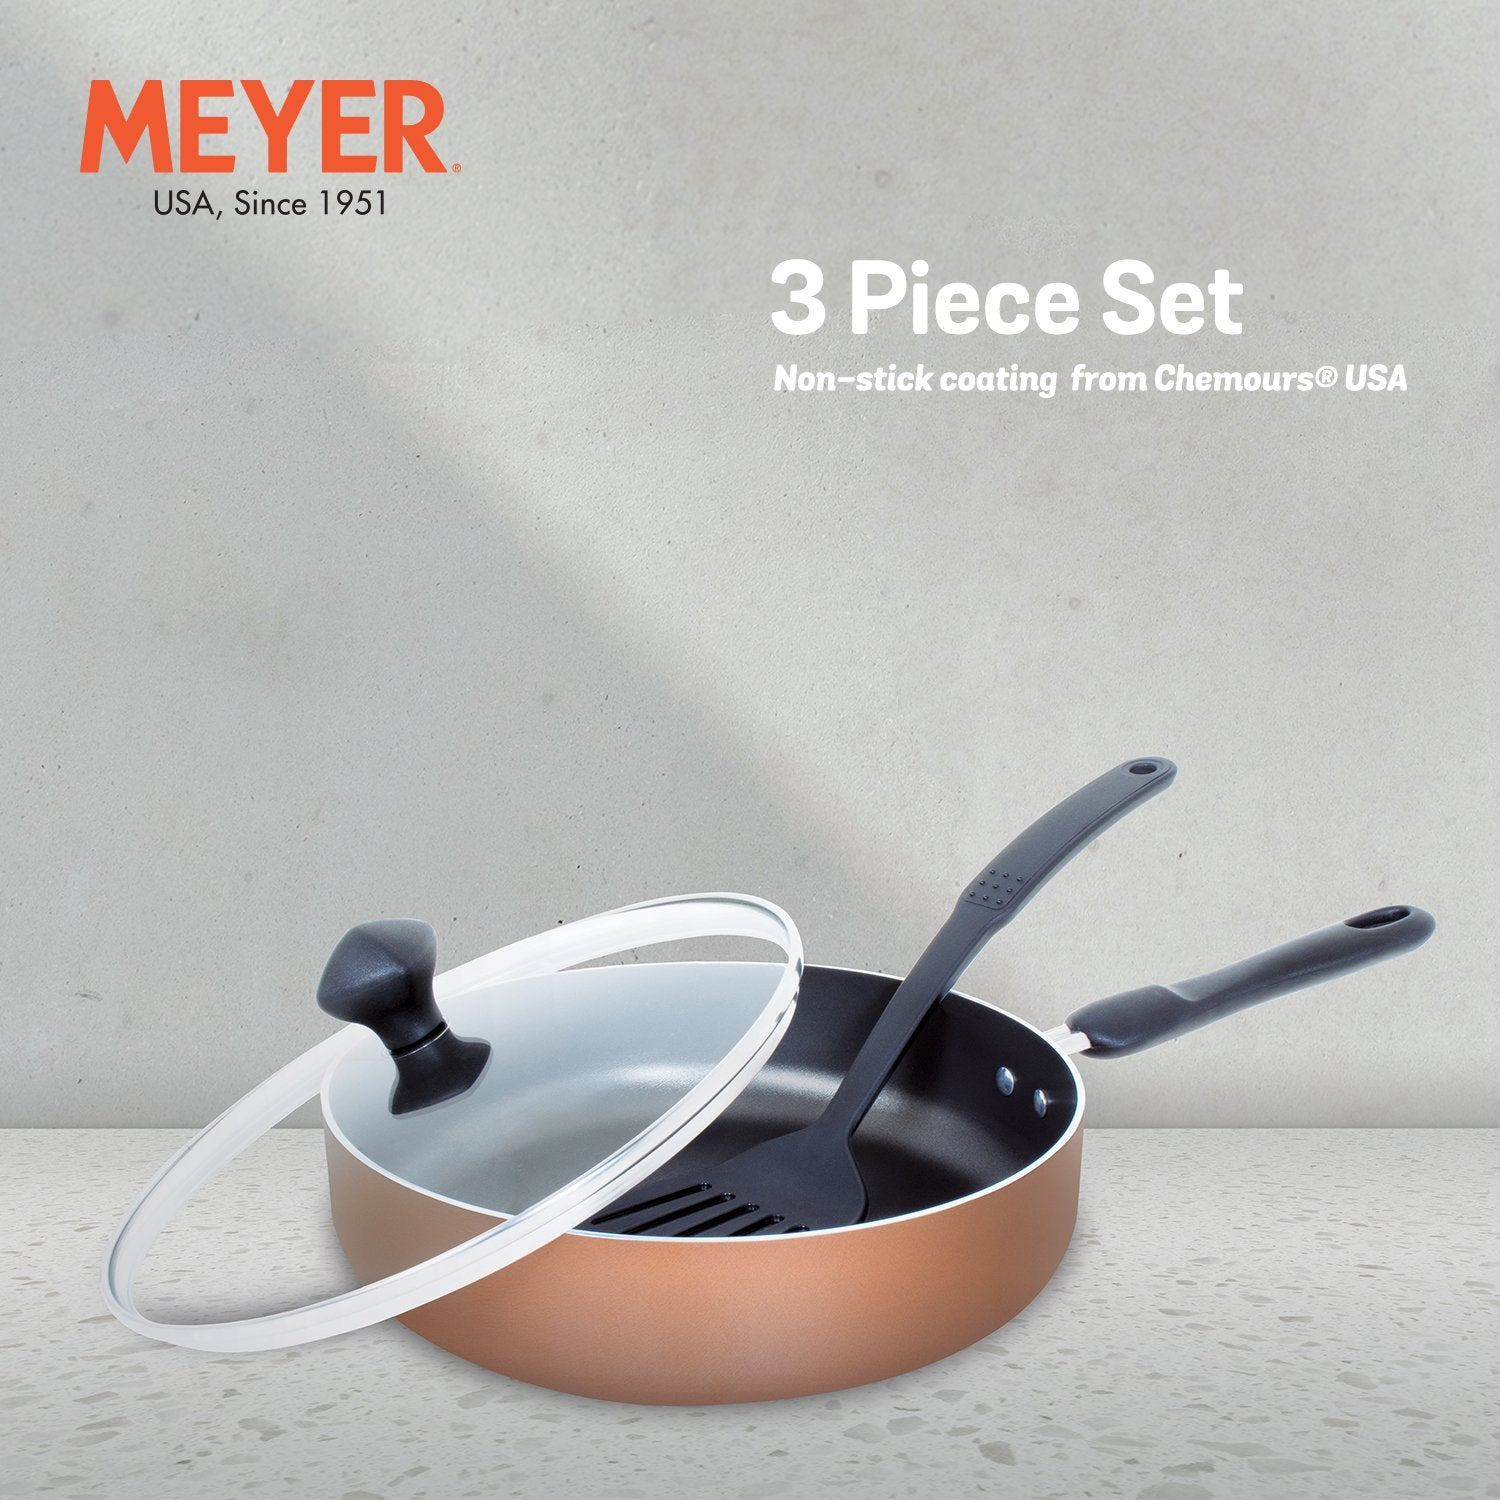 Meyer 3-Piece Cookware Set, Sautepan With Accessory (Not Suitable For Induction)